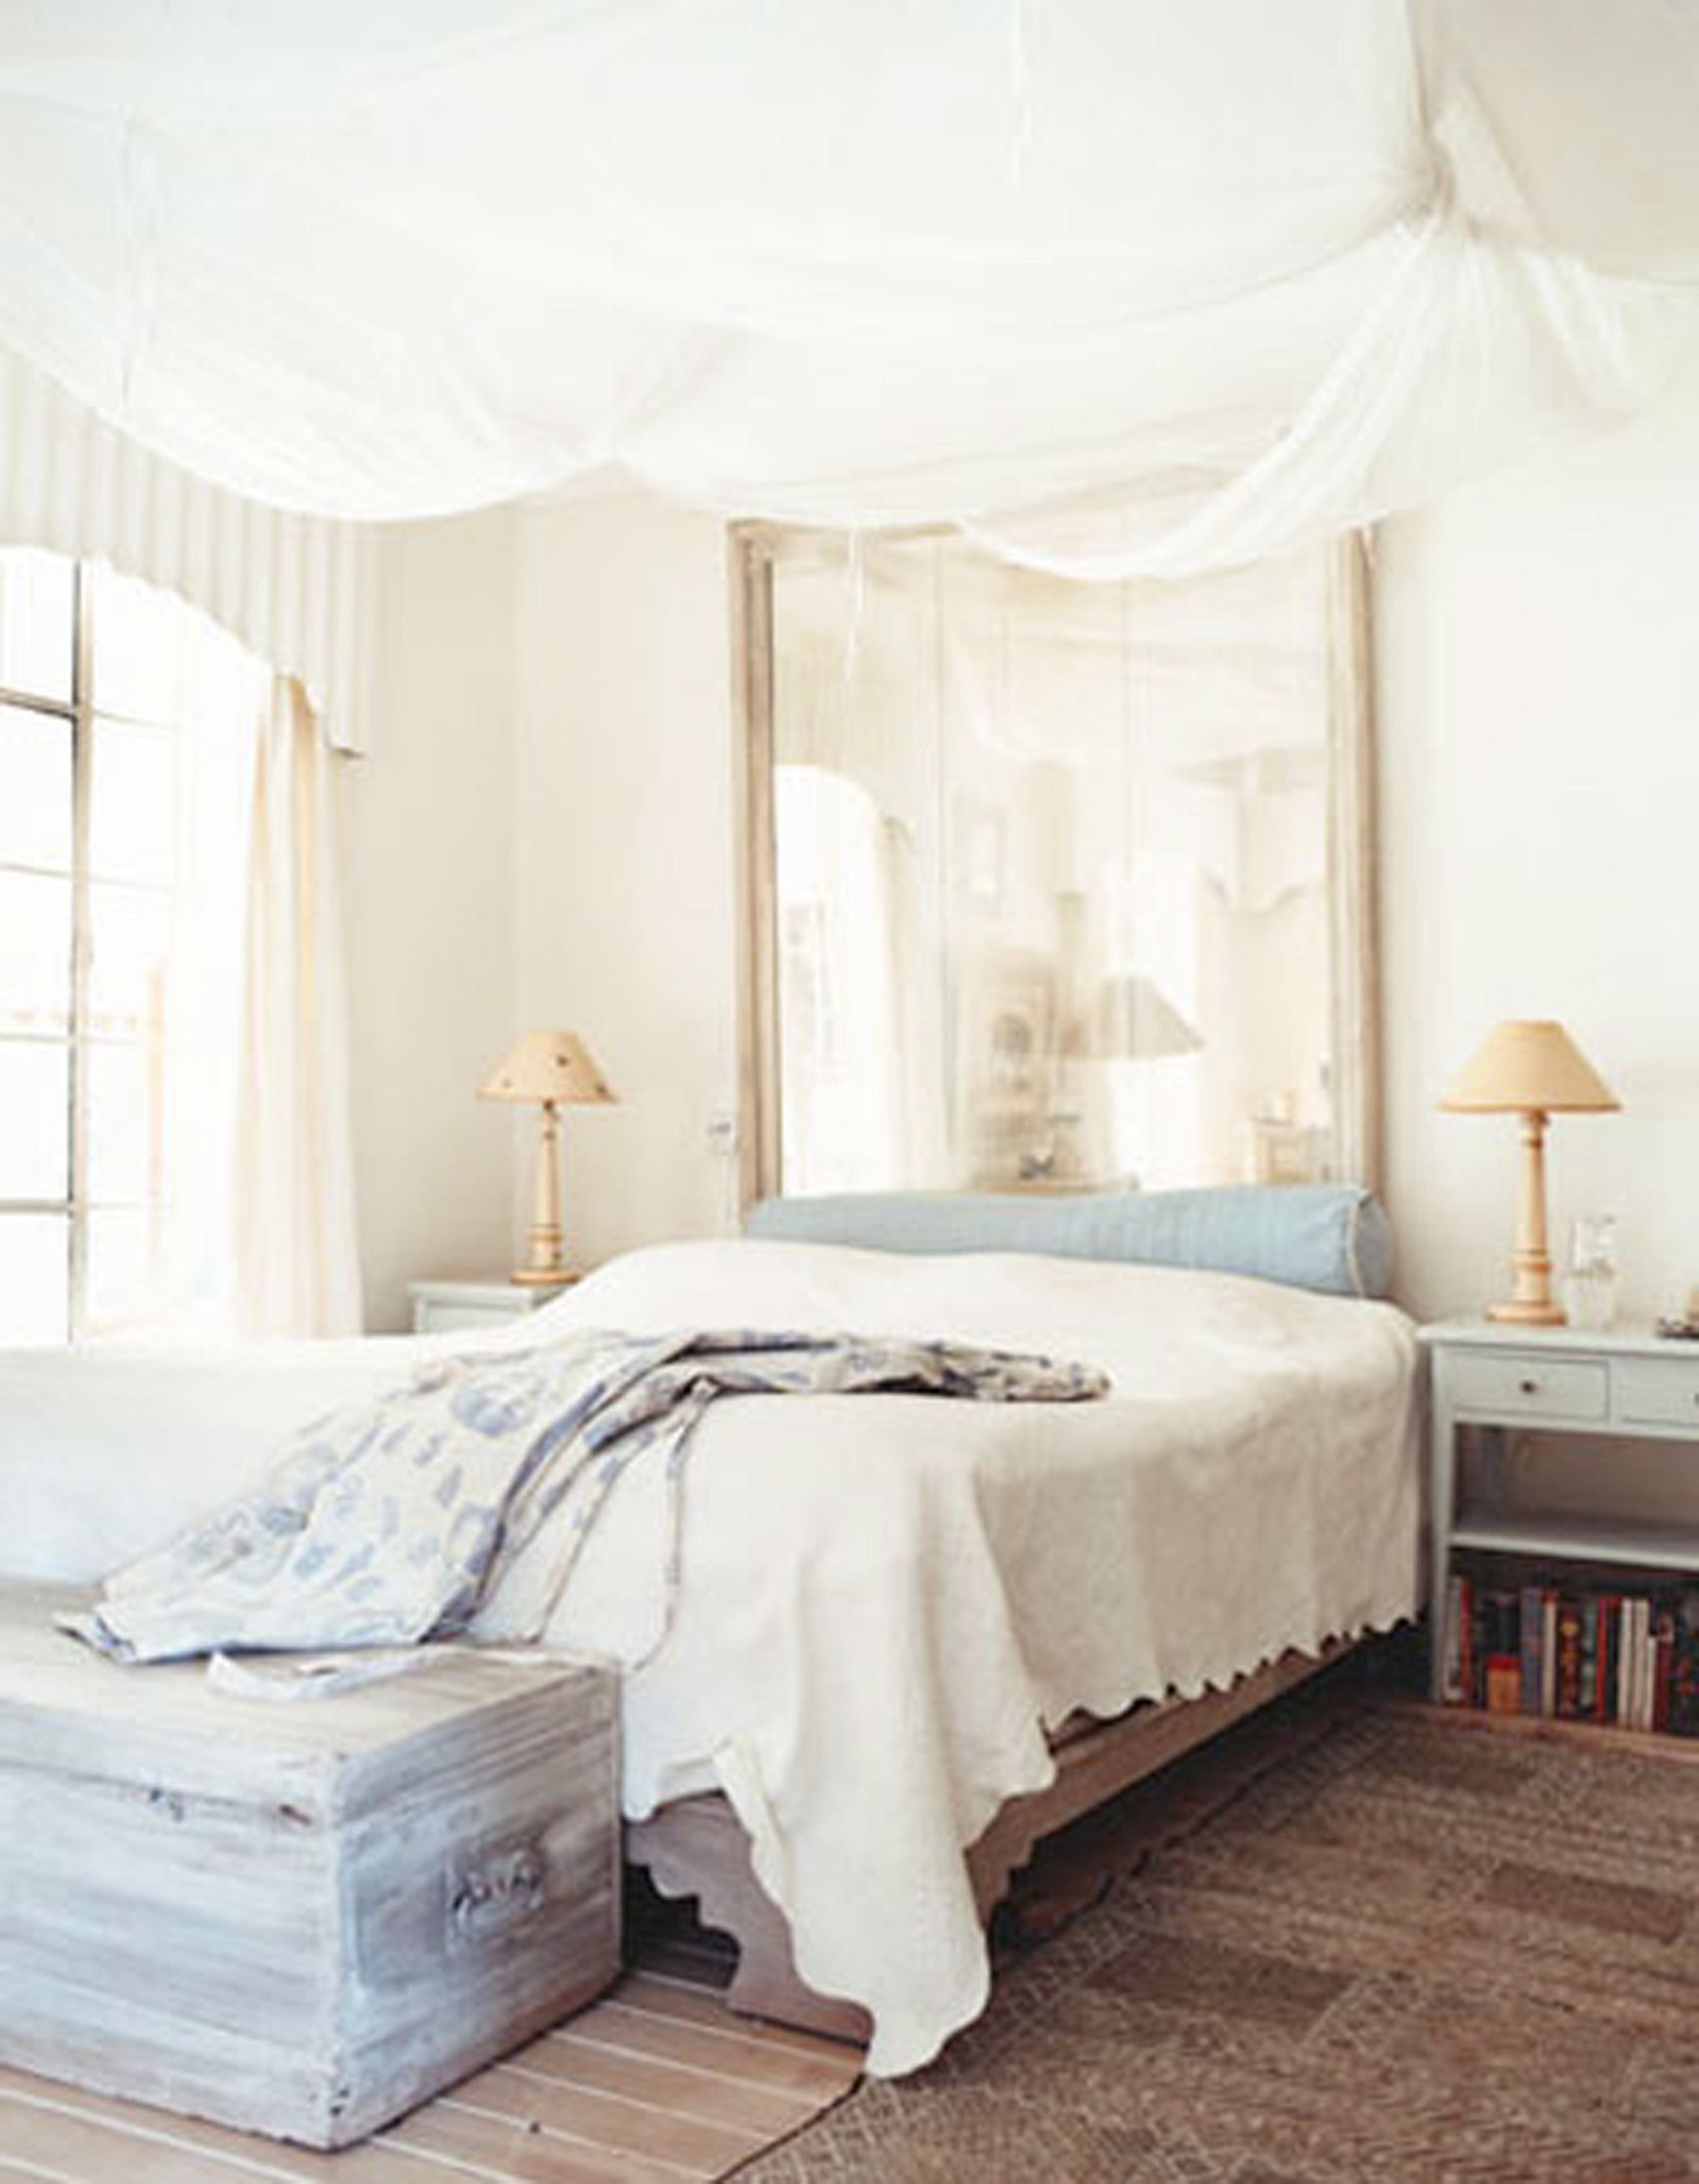 Paint ideas for redoing headboard with mirror bedroom